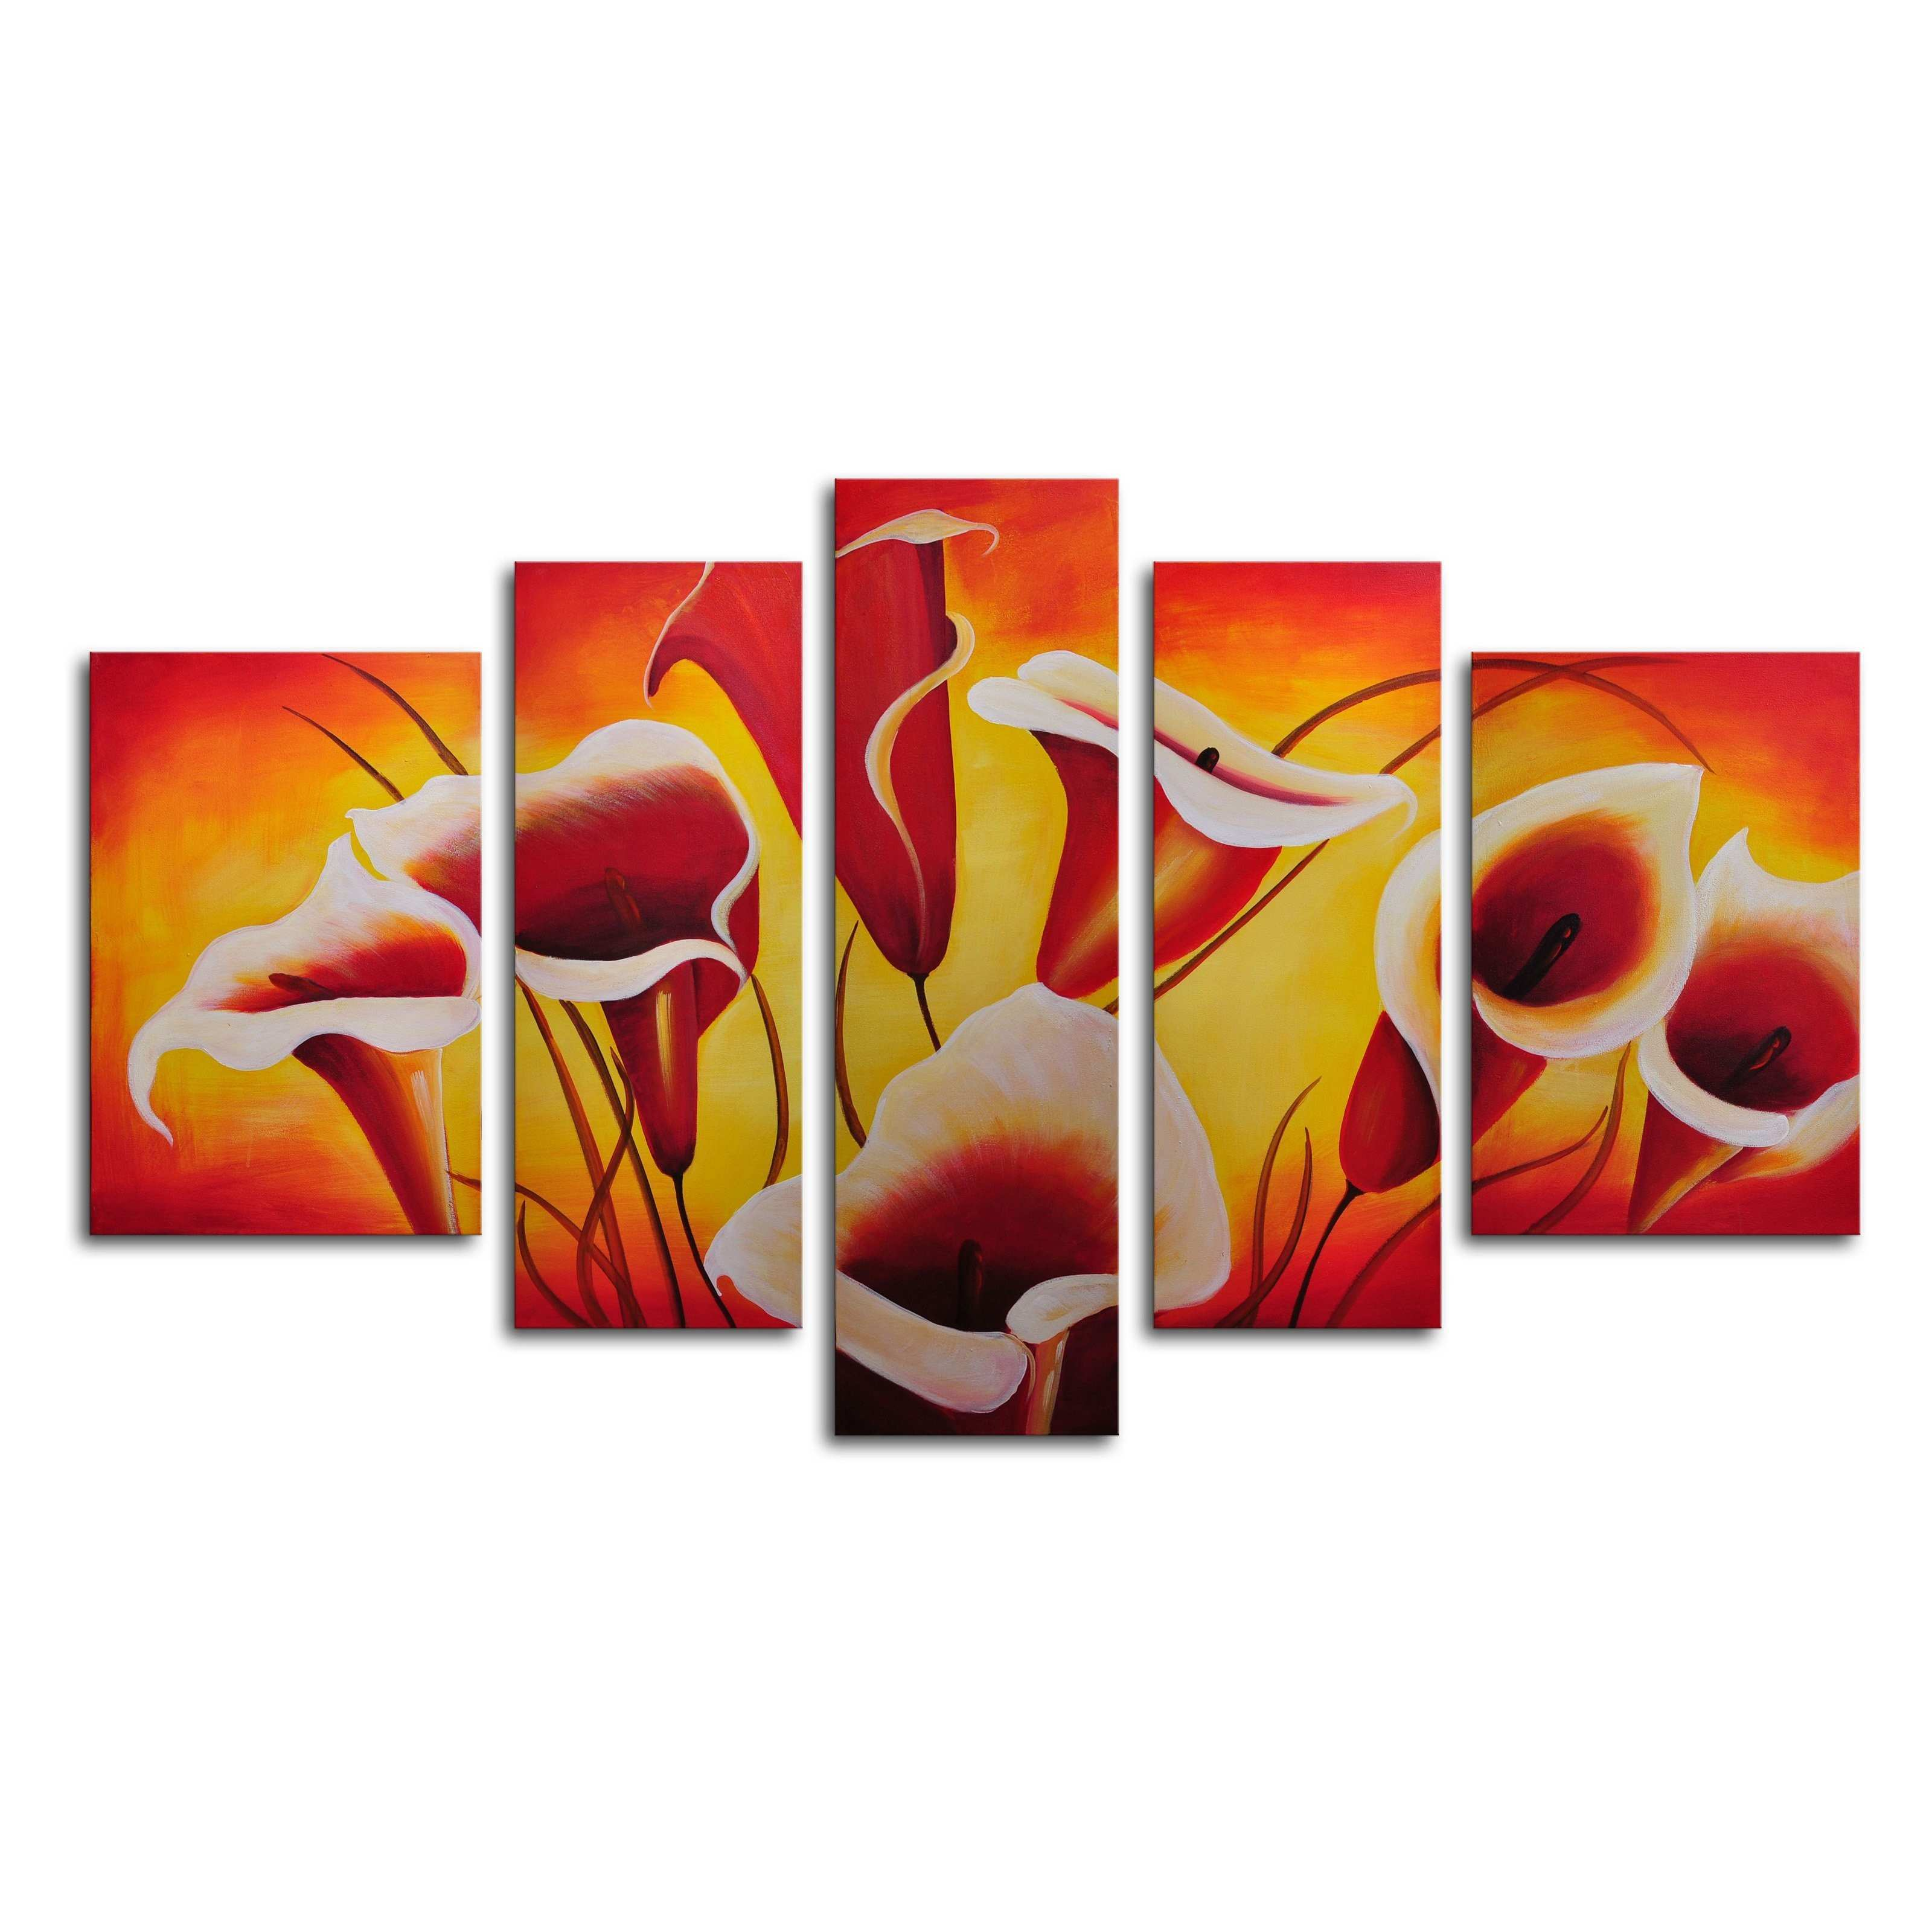 Home Design 4 Piece Wall Art Frosted Glass Canvas 56w X 32h In M5